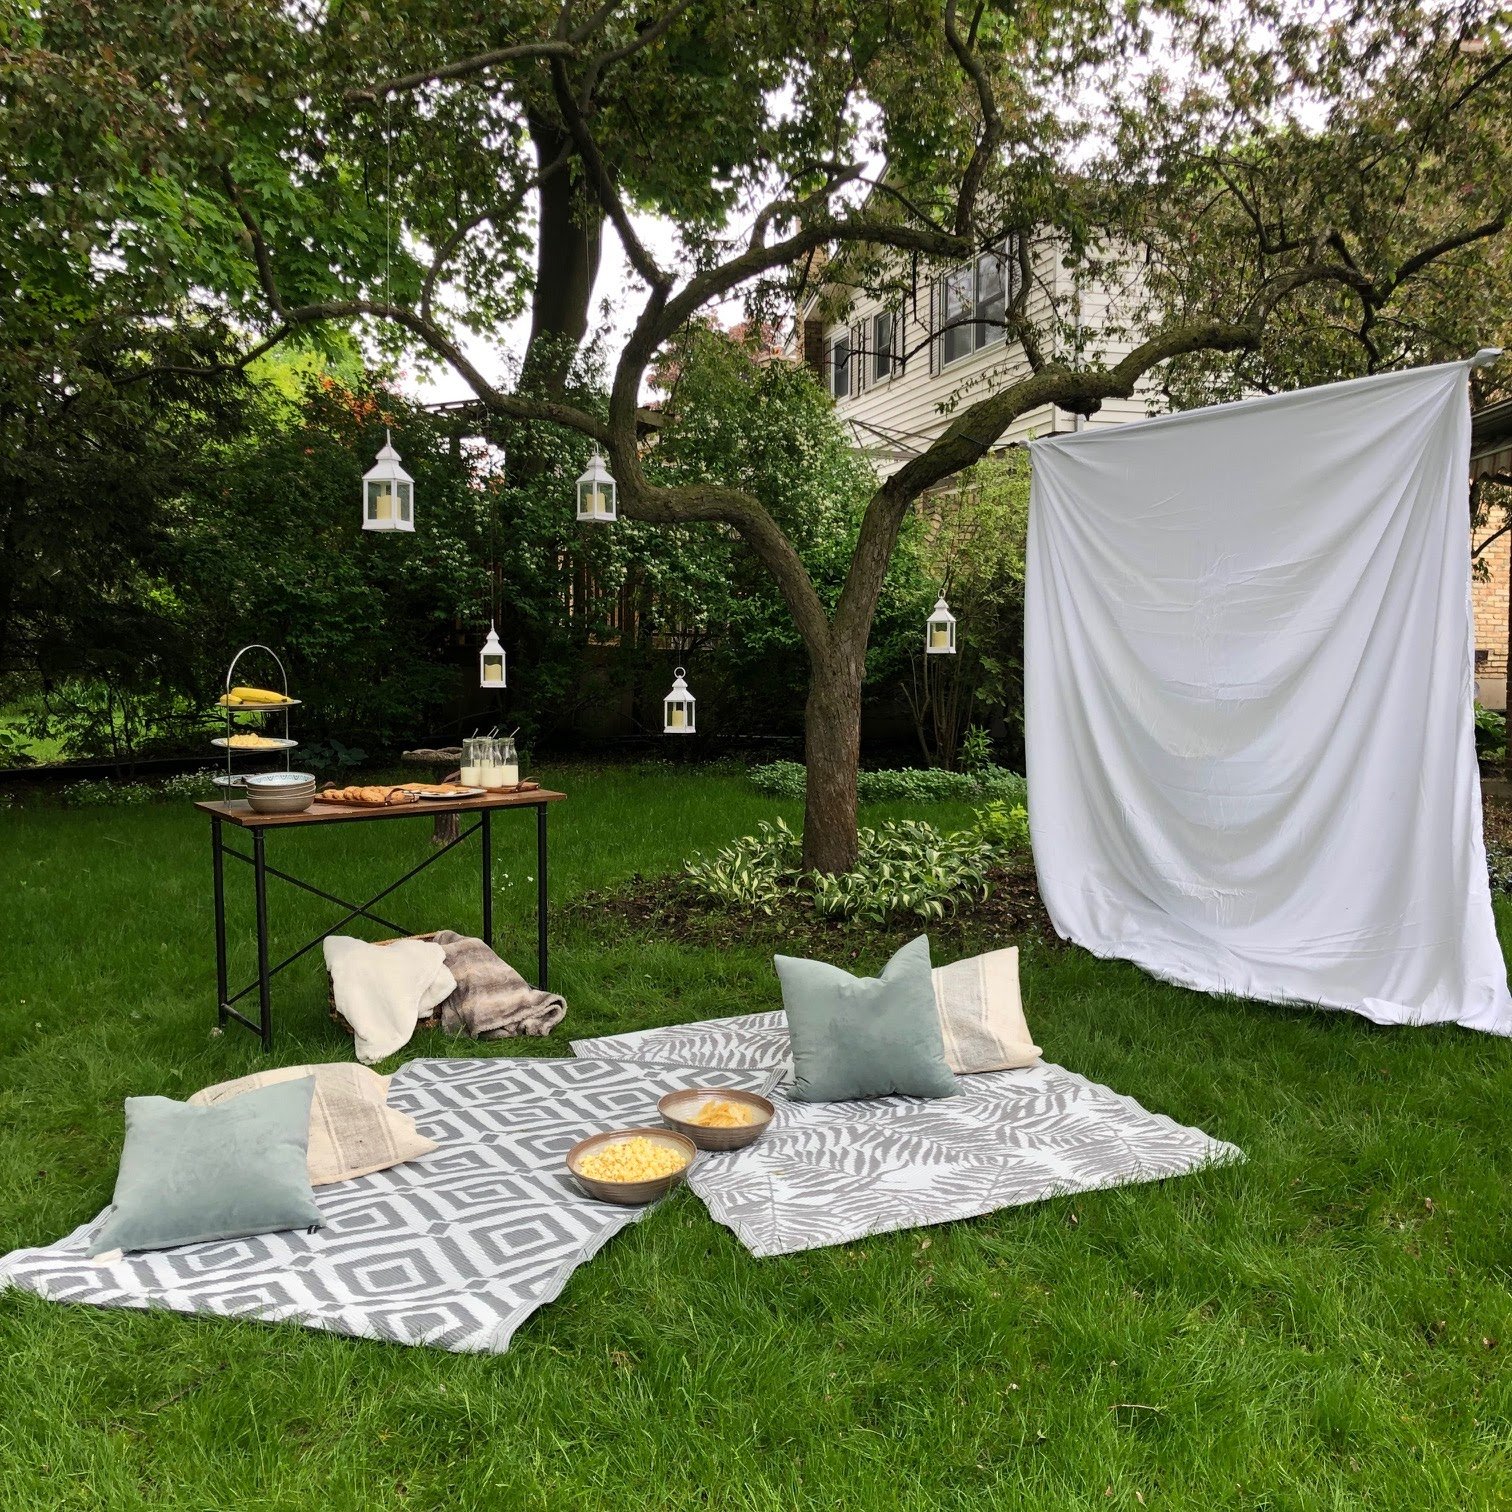 diy-outdoor-movie-night-harlow-thistle-1222